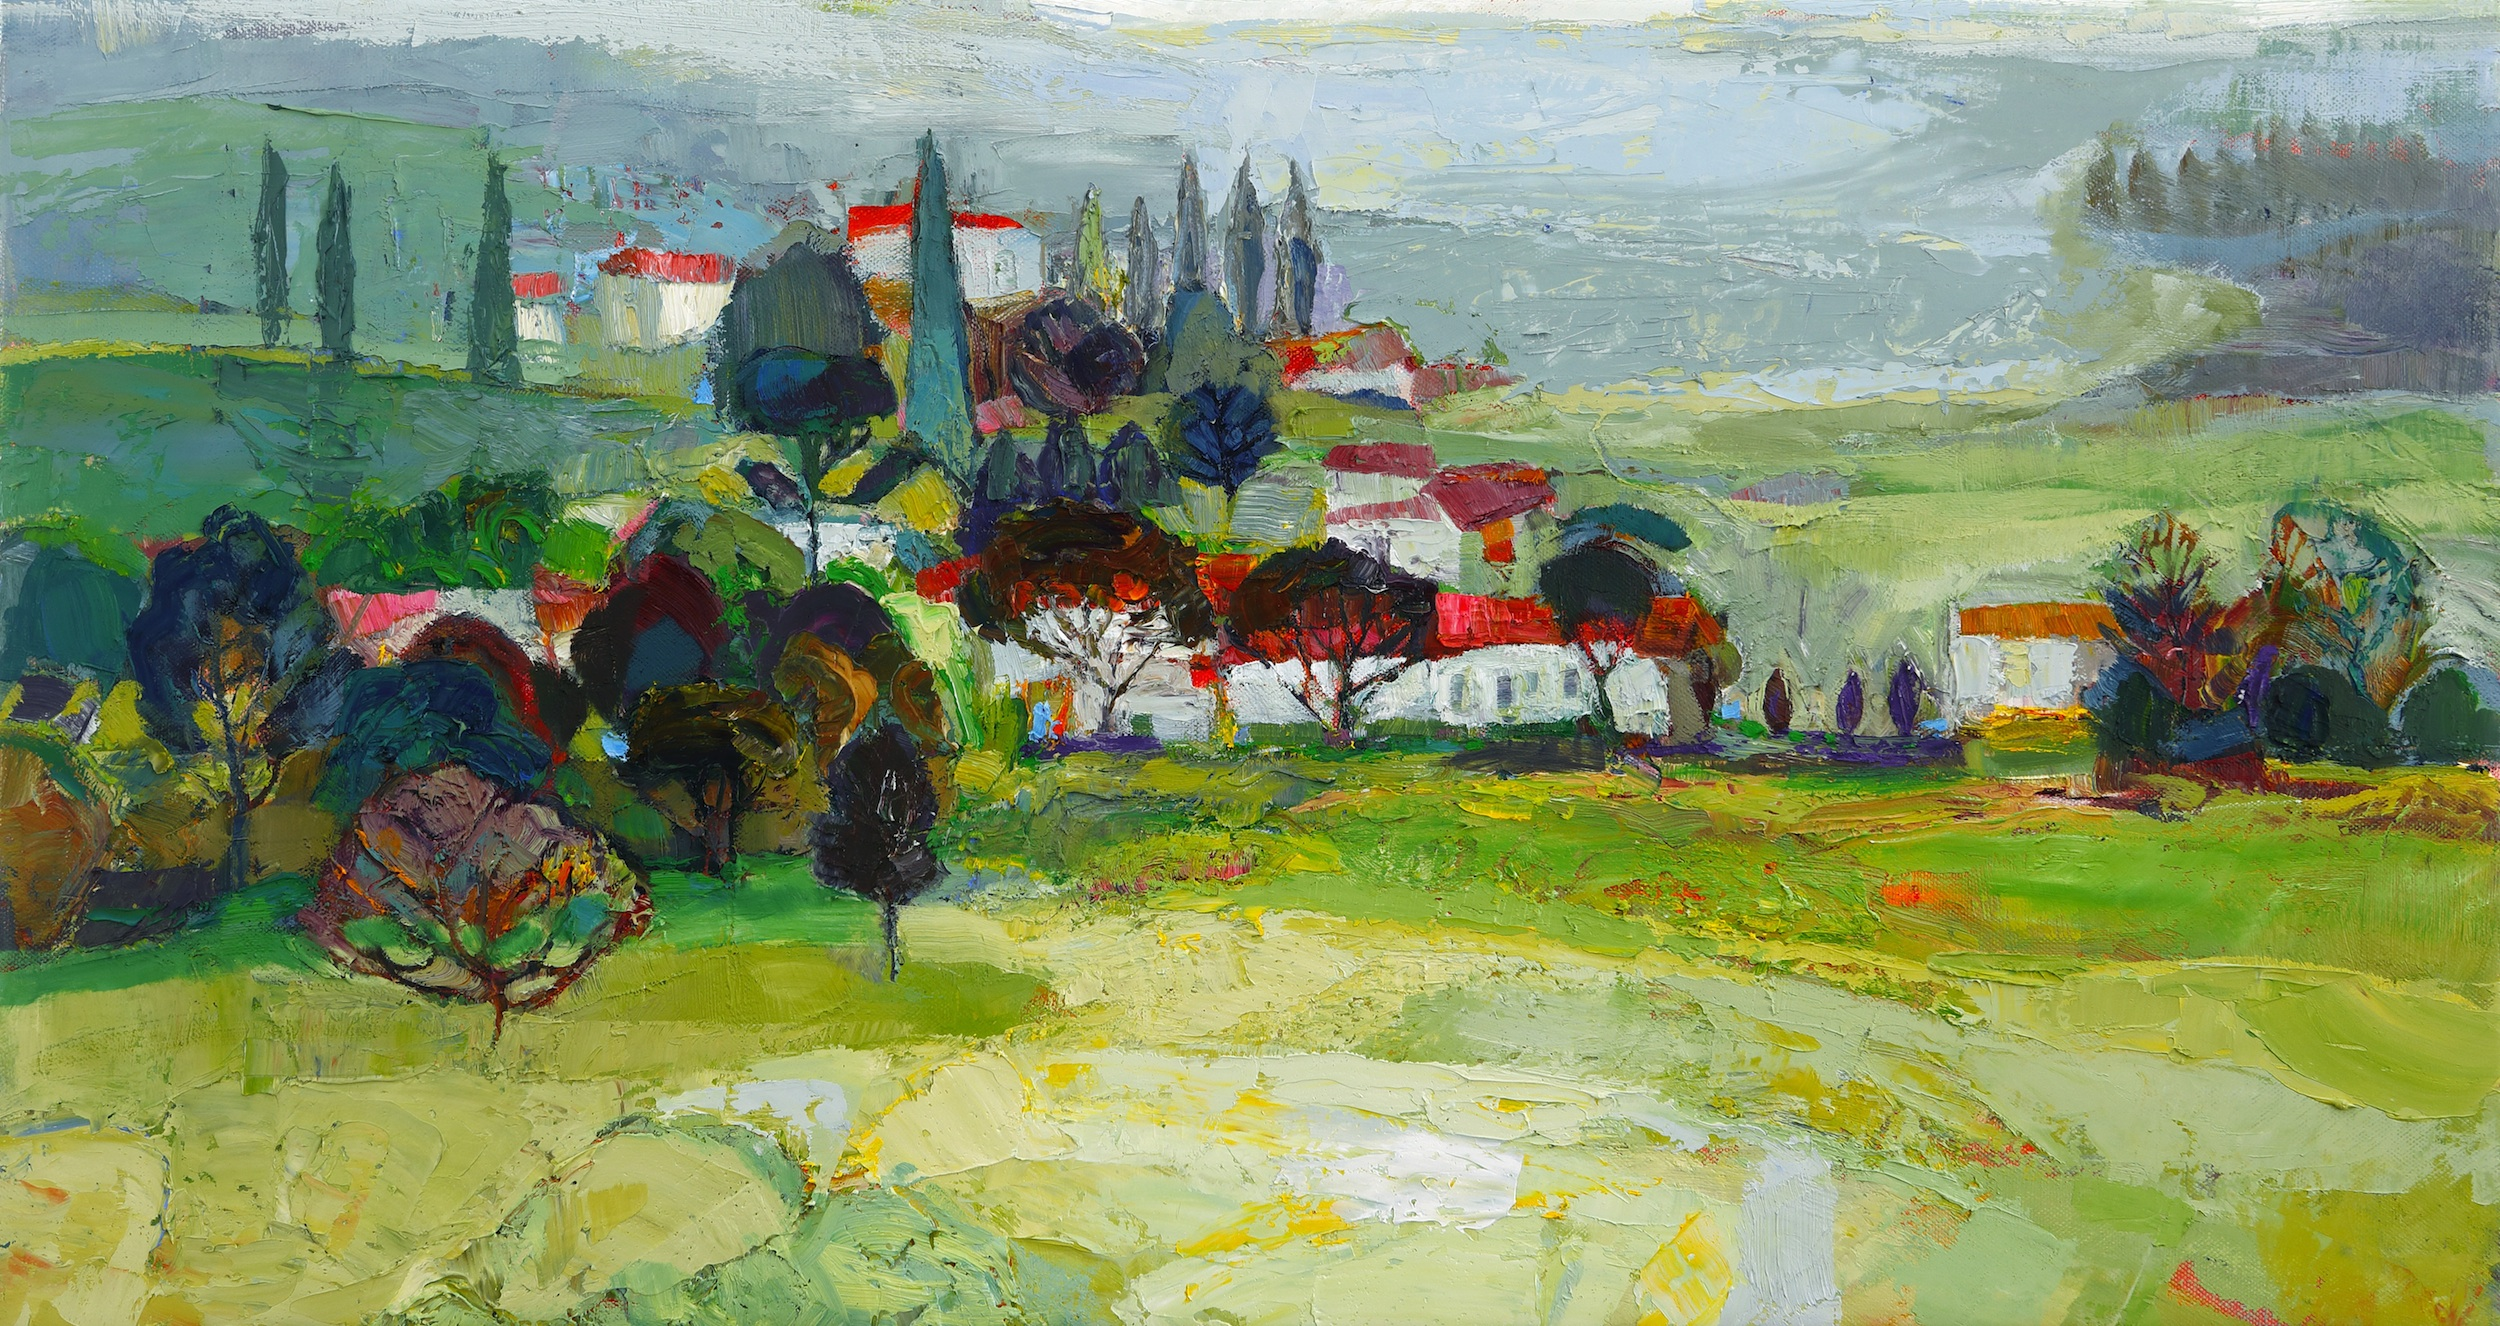 Title: In the Hills Size: 16 x 30 inches Medium: Oil on Canvas Price: SOLD